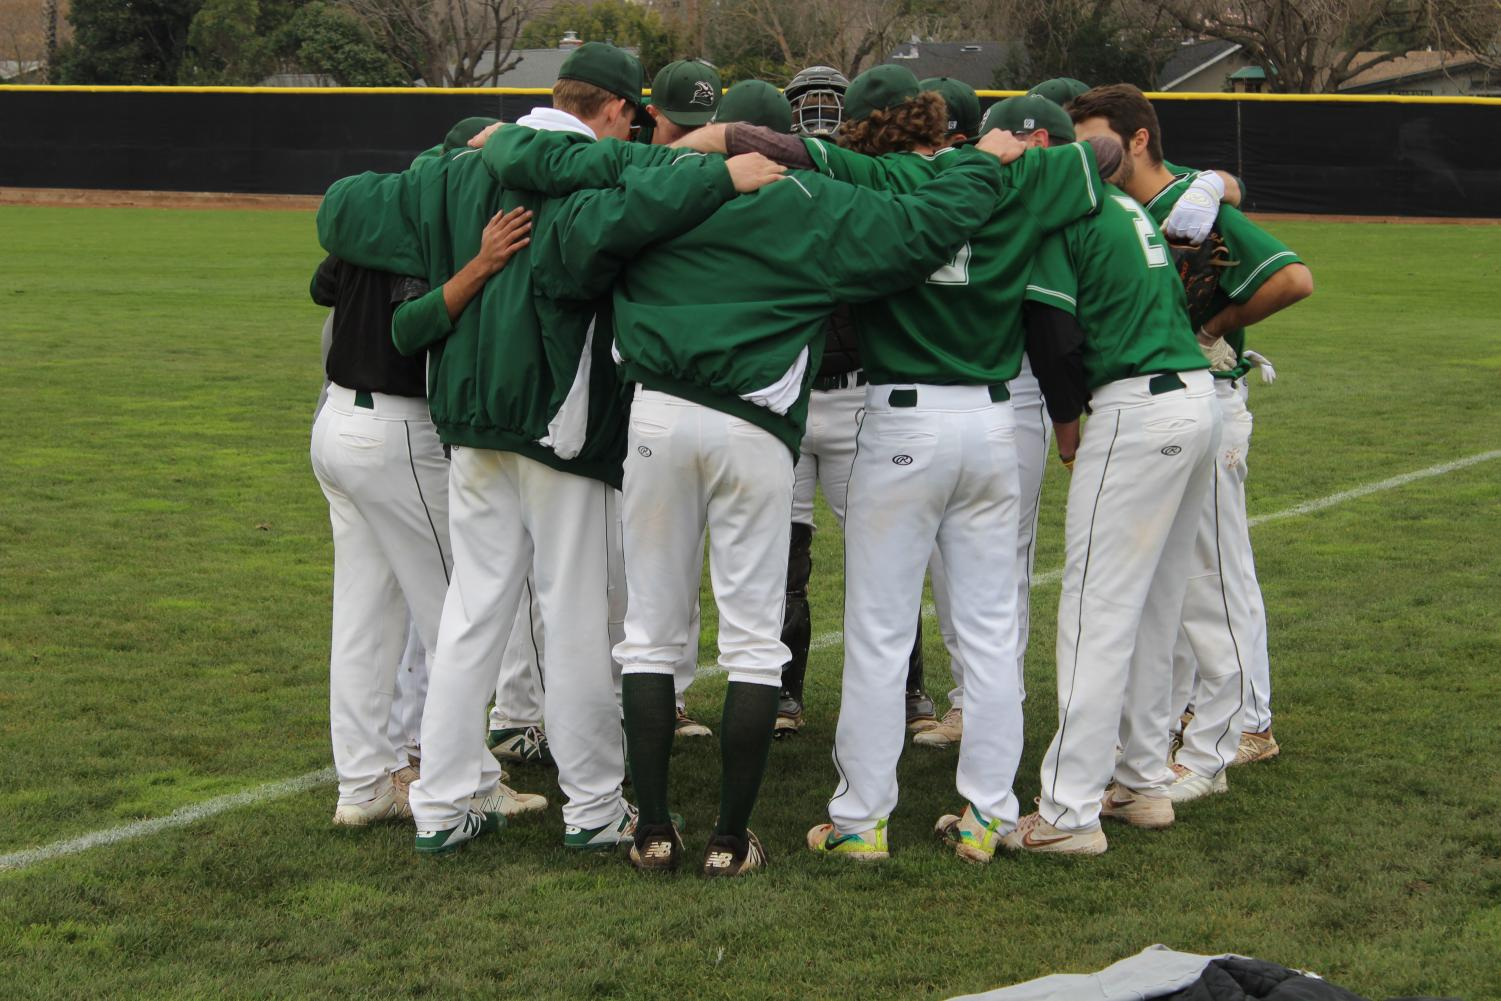 All of the baseball players huddle before the game.(Alex Martin/The Inquirer).